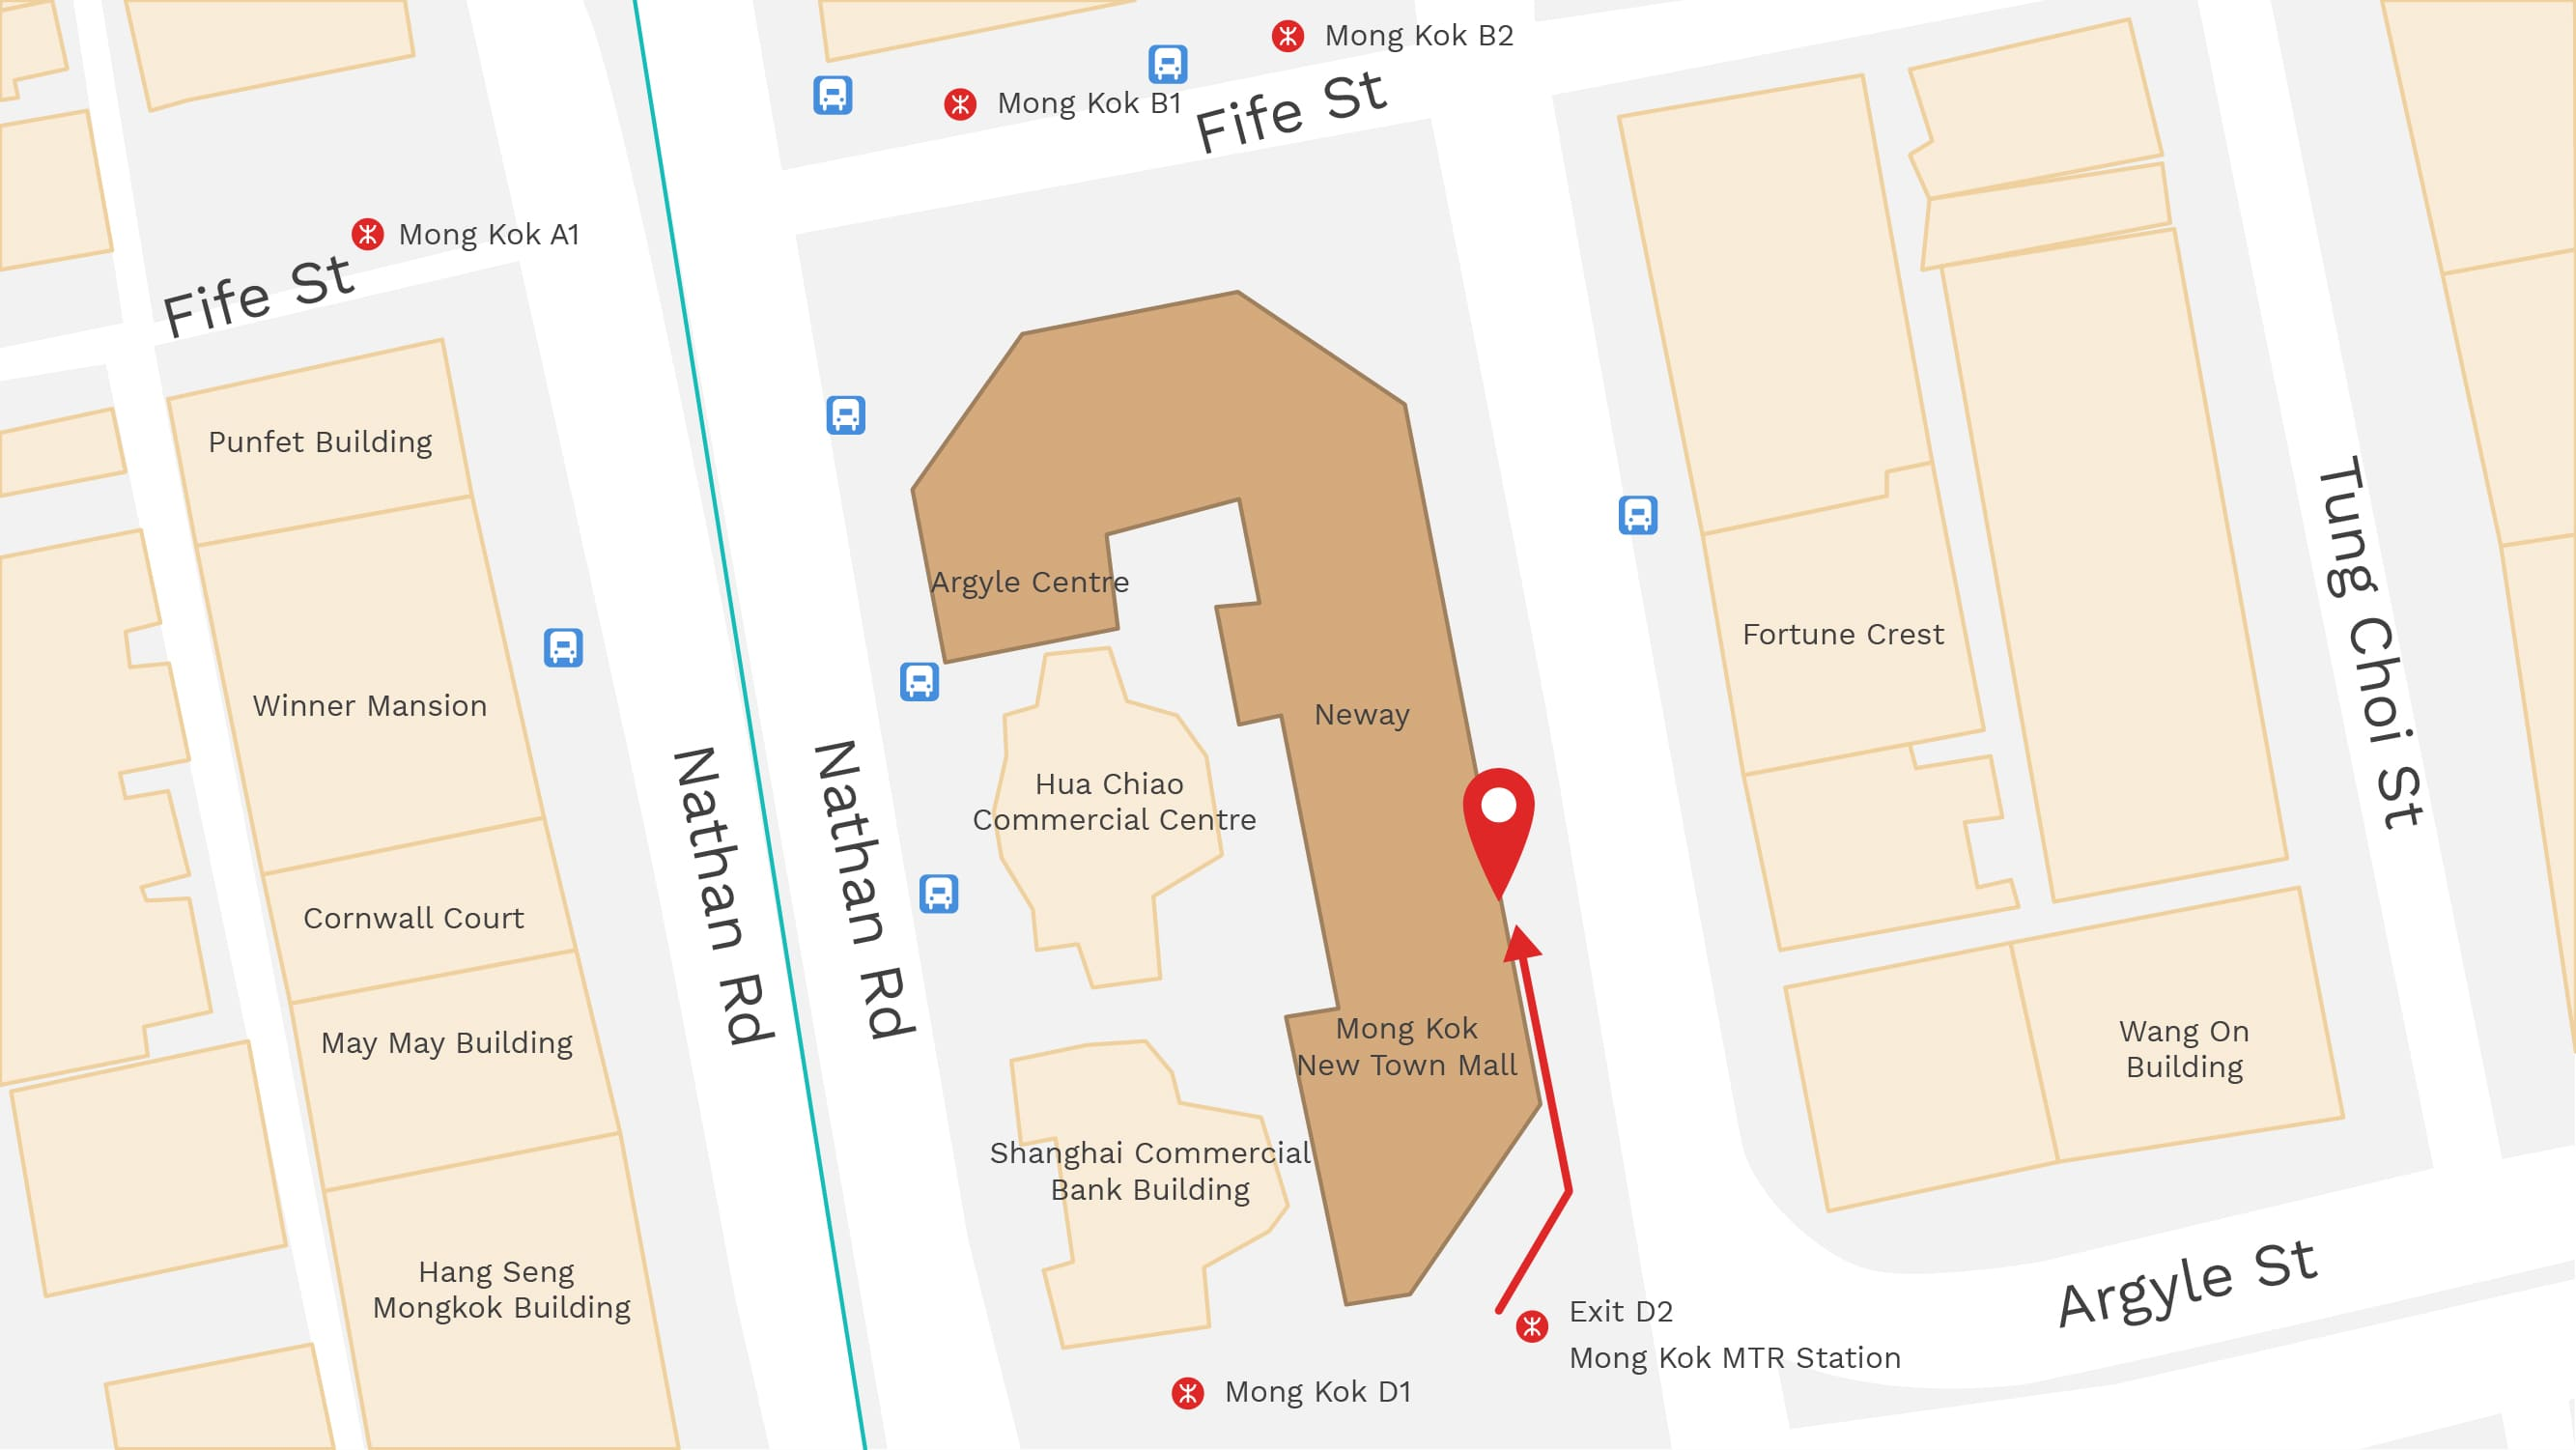 Map of Shop in Mong Kok